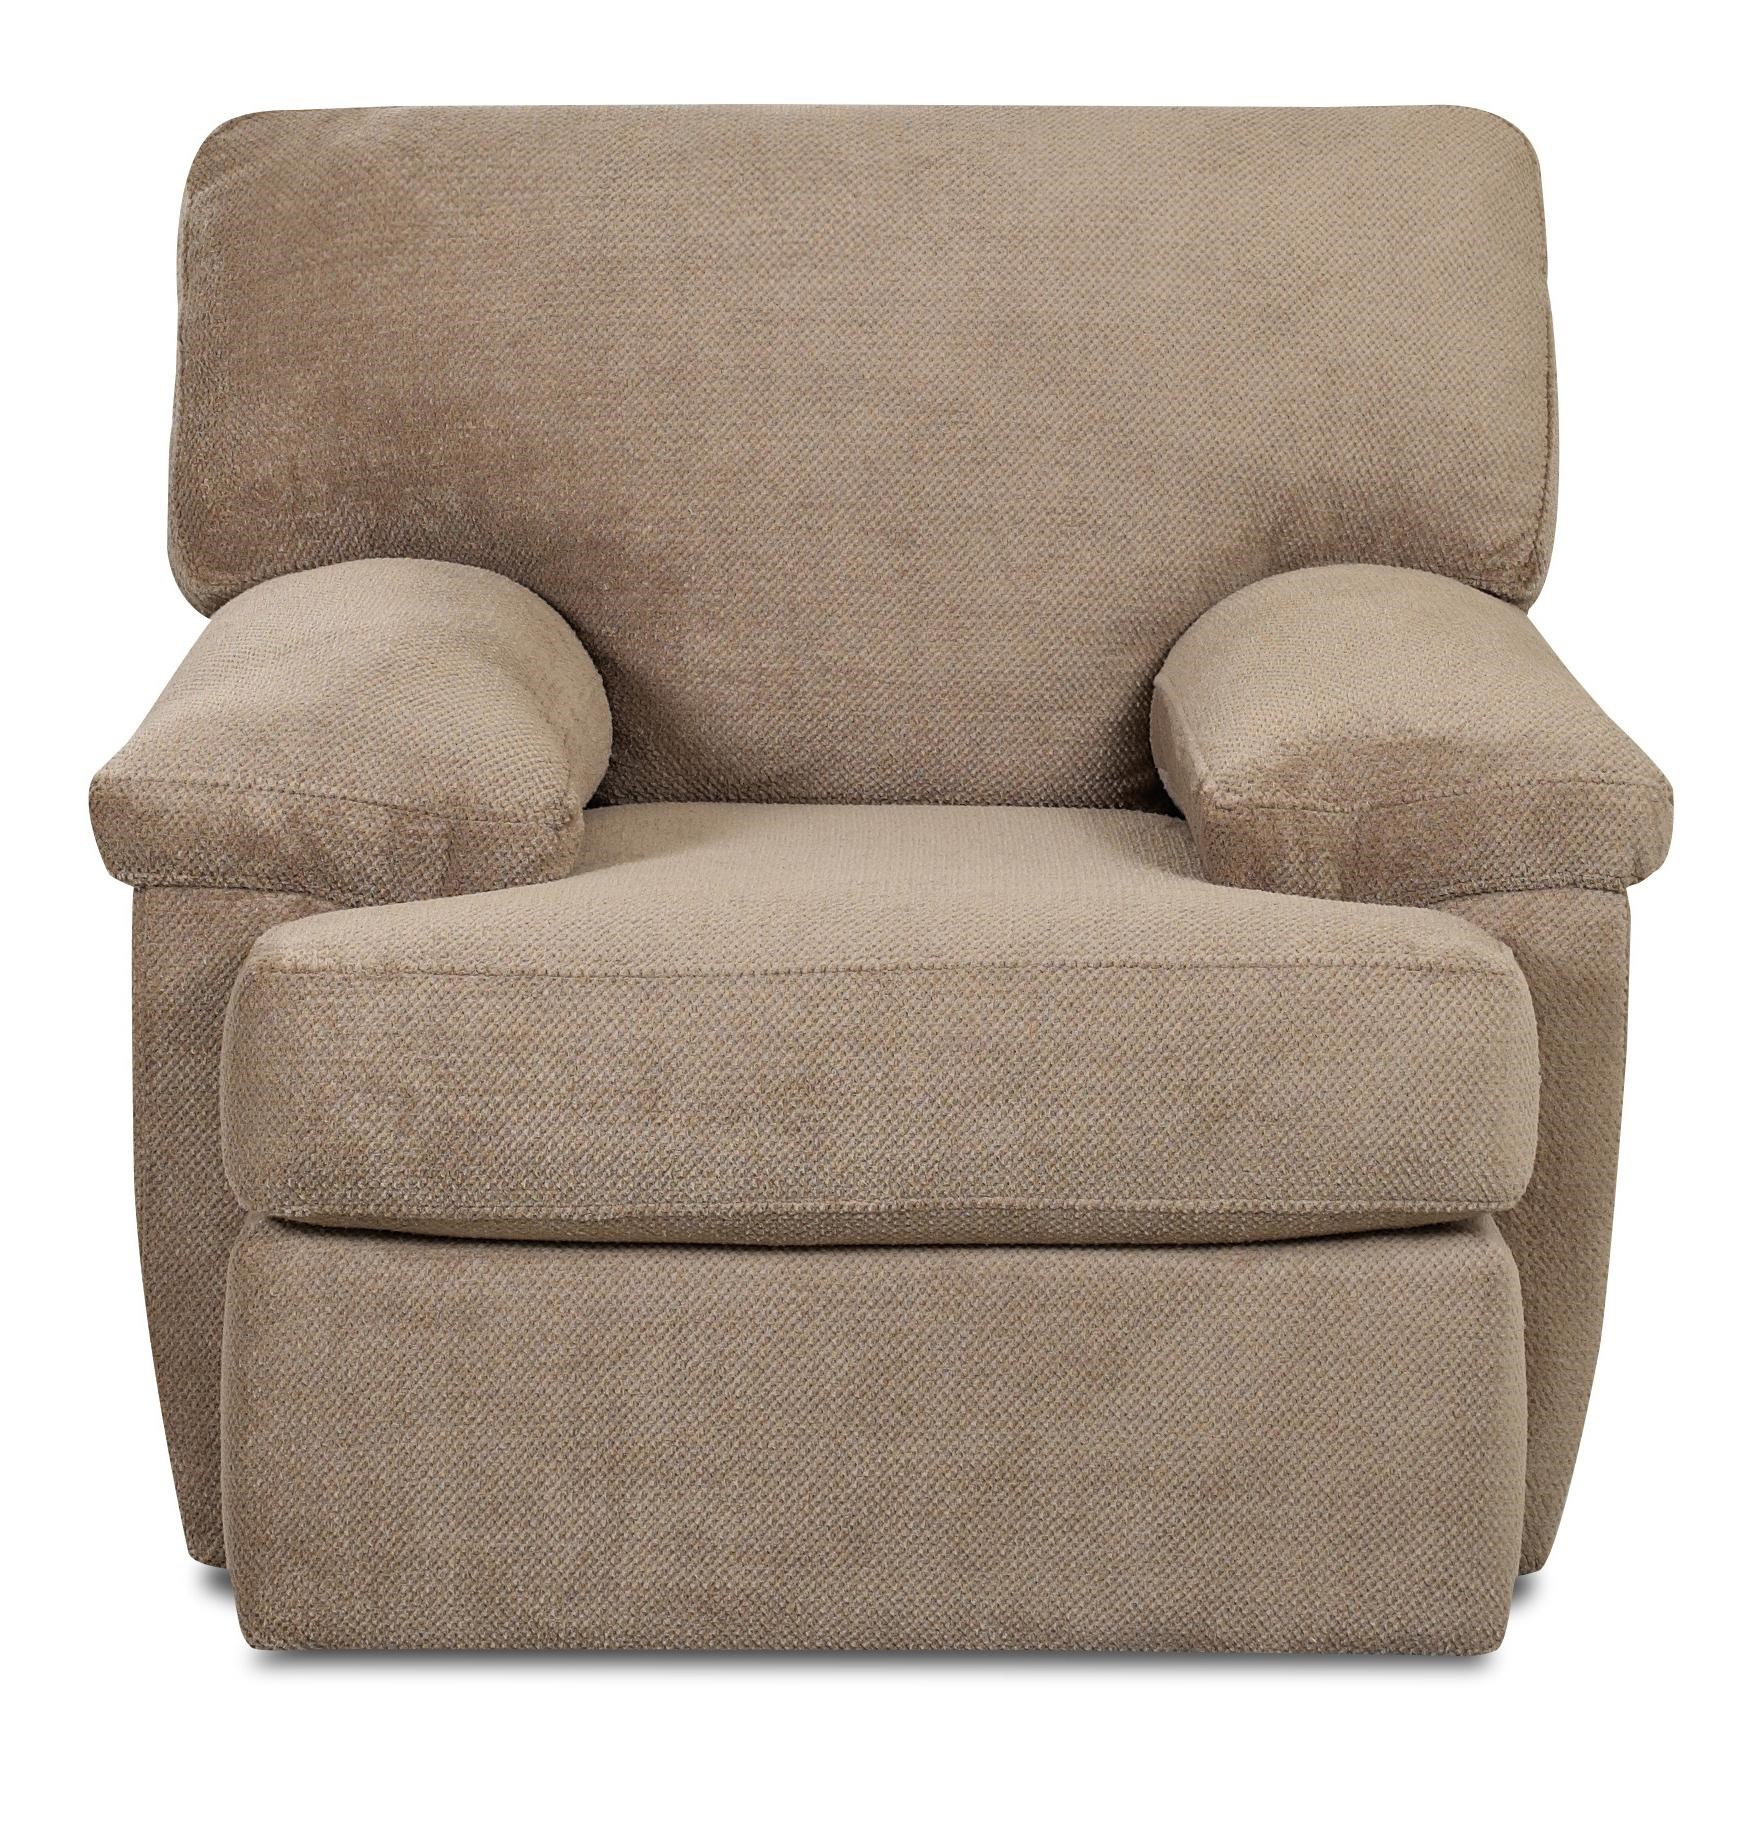 Klaussner Walton Casual Chair With Wide Pillow Arms | Olindeu0027s Furniture |  Upholstered Chairs